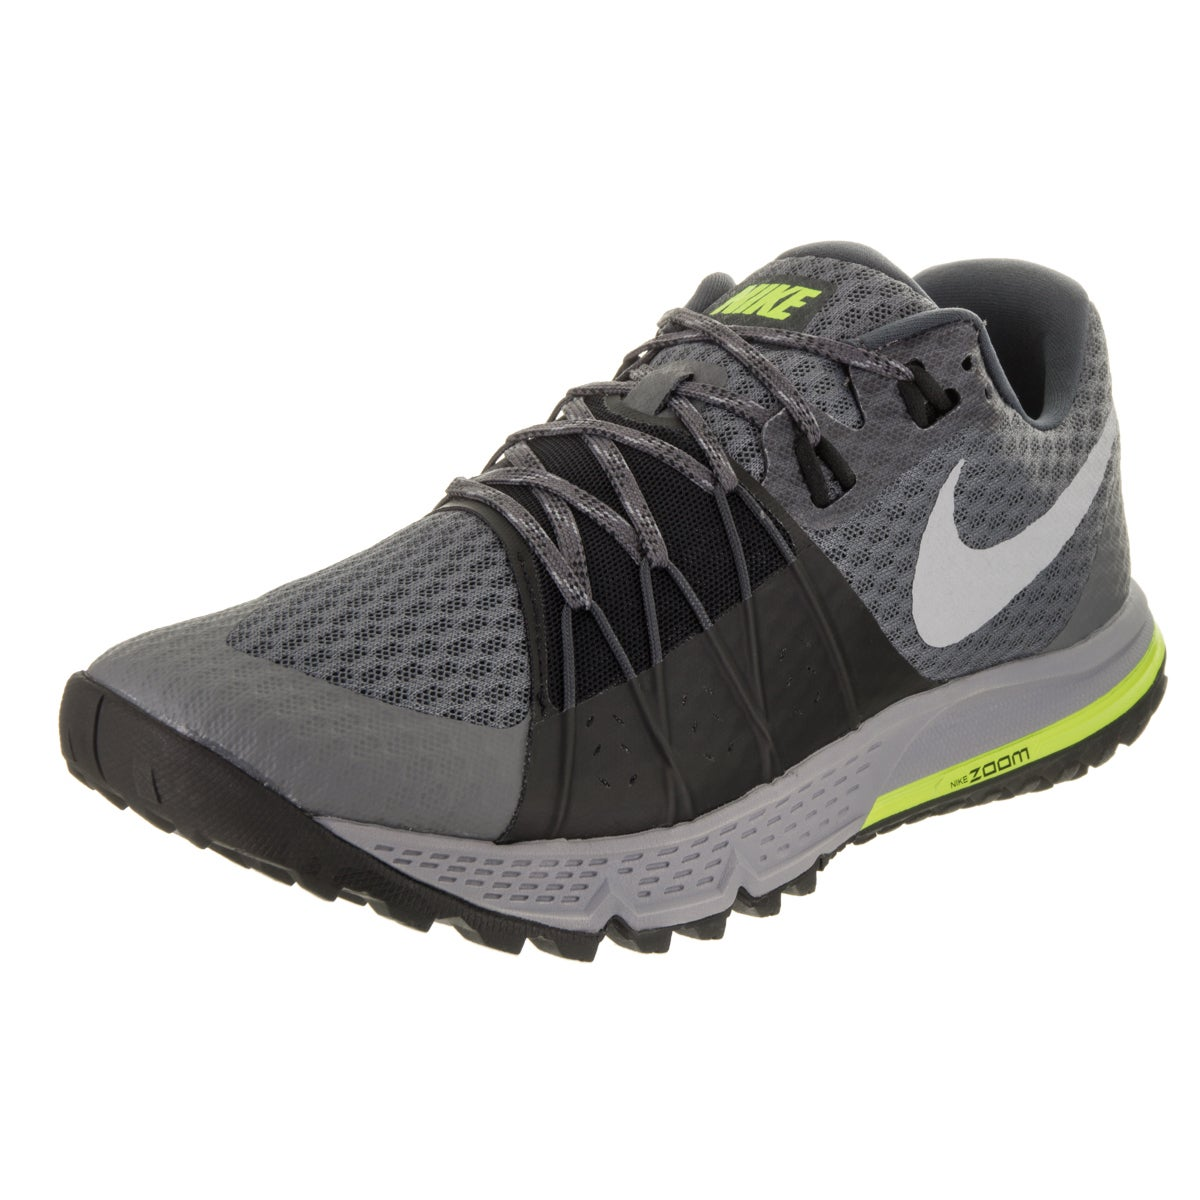 e46213433dfb Shop Nike Men s Air Zoom Wildhorse 4 Running Shoe - Free Shipping Today -  Overstock - 16739515